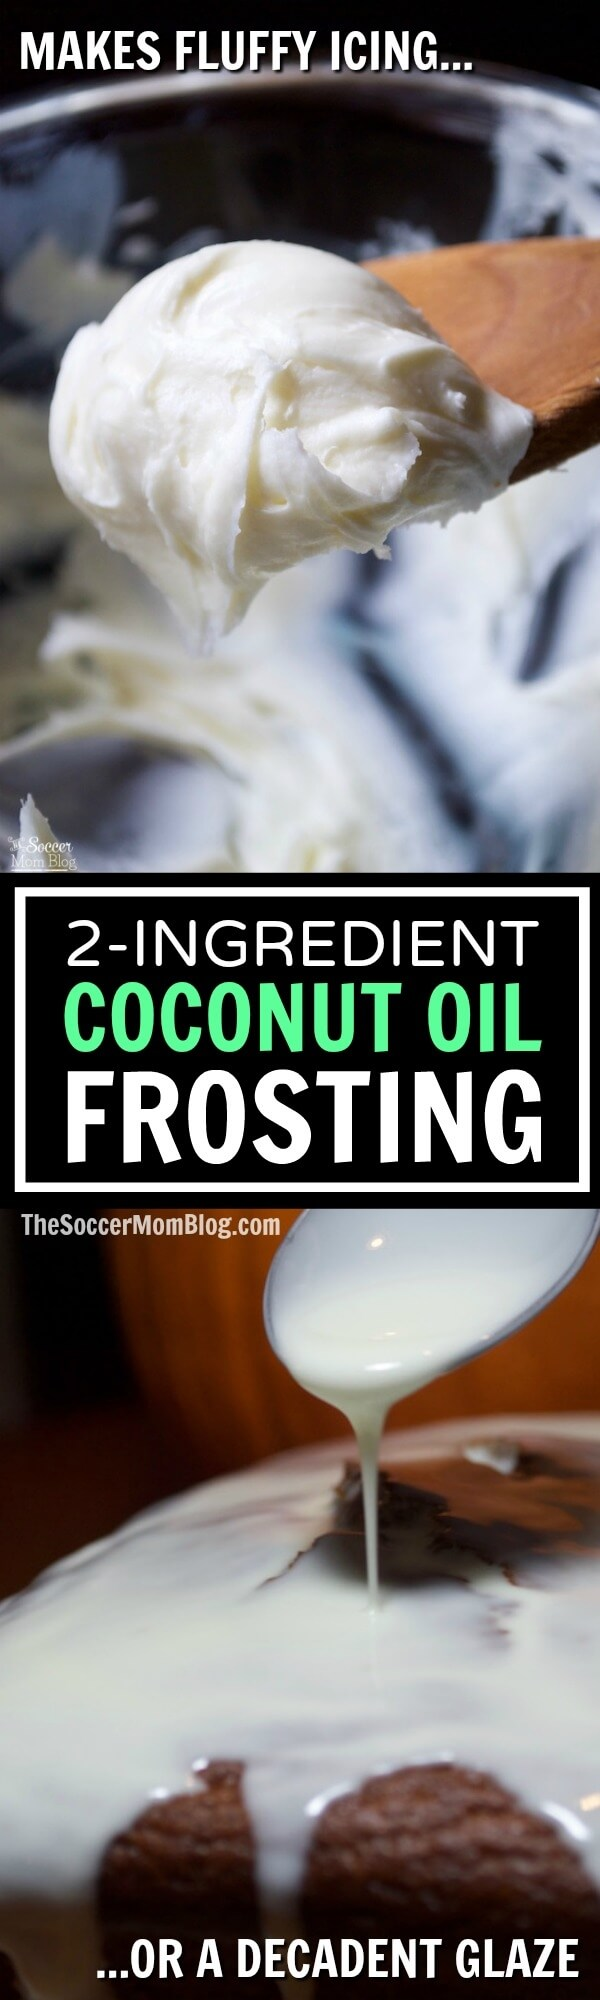 It really is like magic! ONE coconut oil frosting recipe creates two completely different types of frosting! Super EASY 2-ingredient recipe can be made with white or dark chocolate!